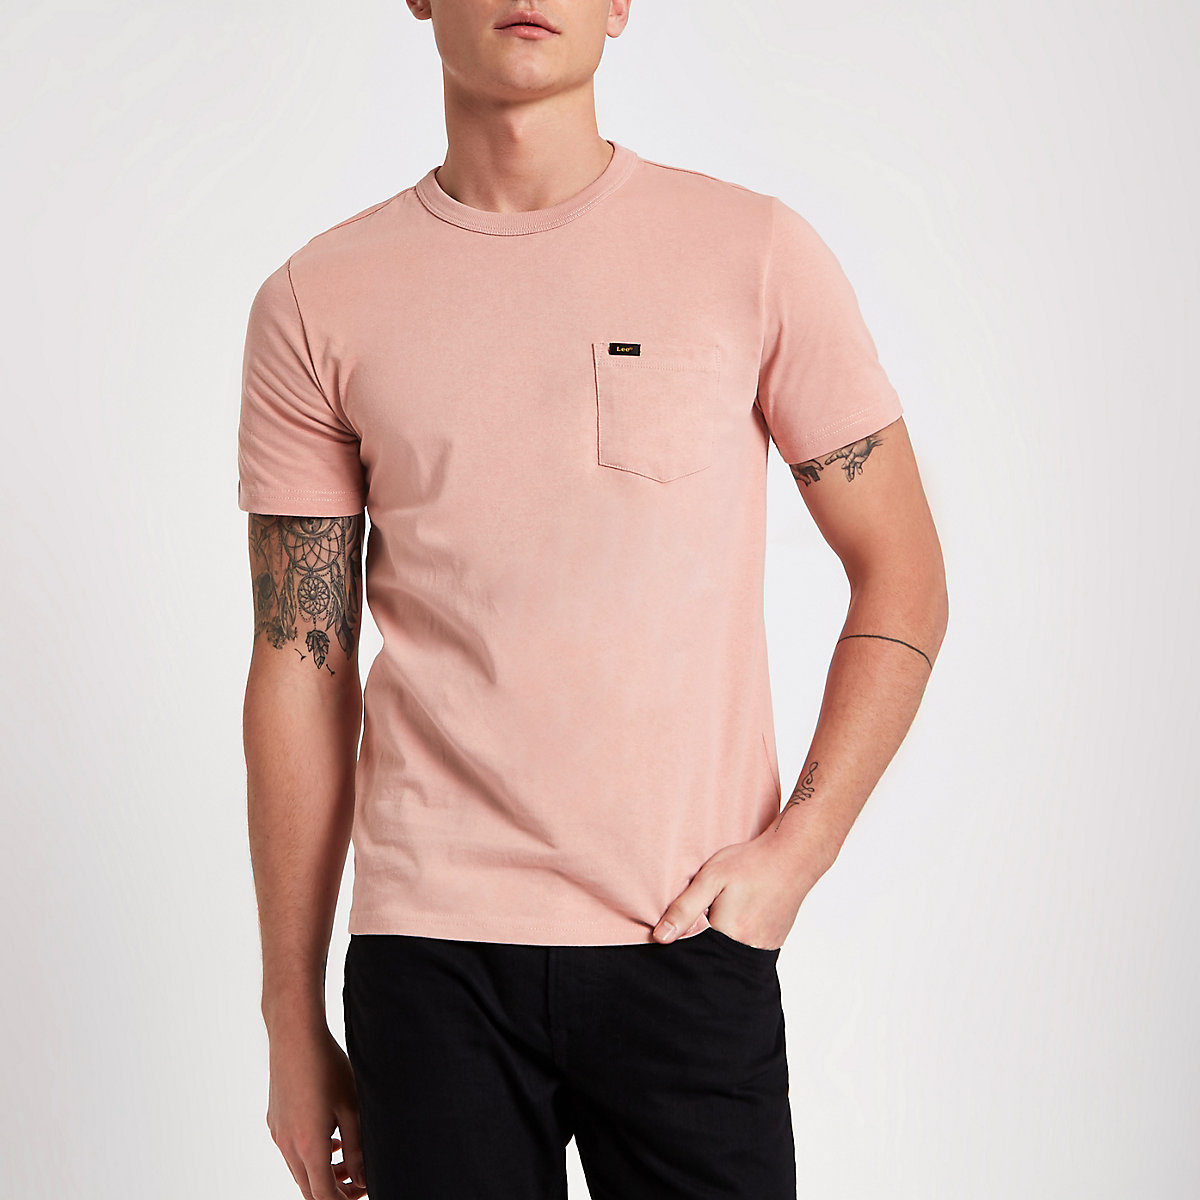 Lee pink pocket crew neck T-shirt